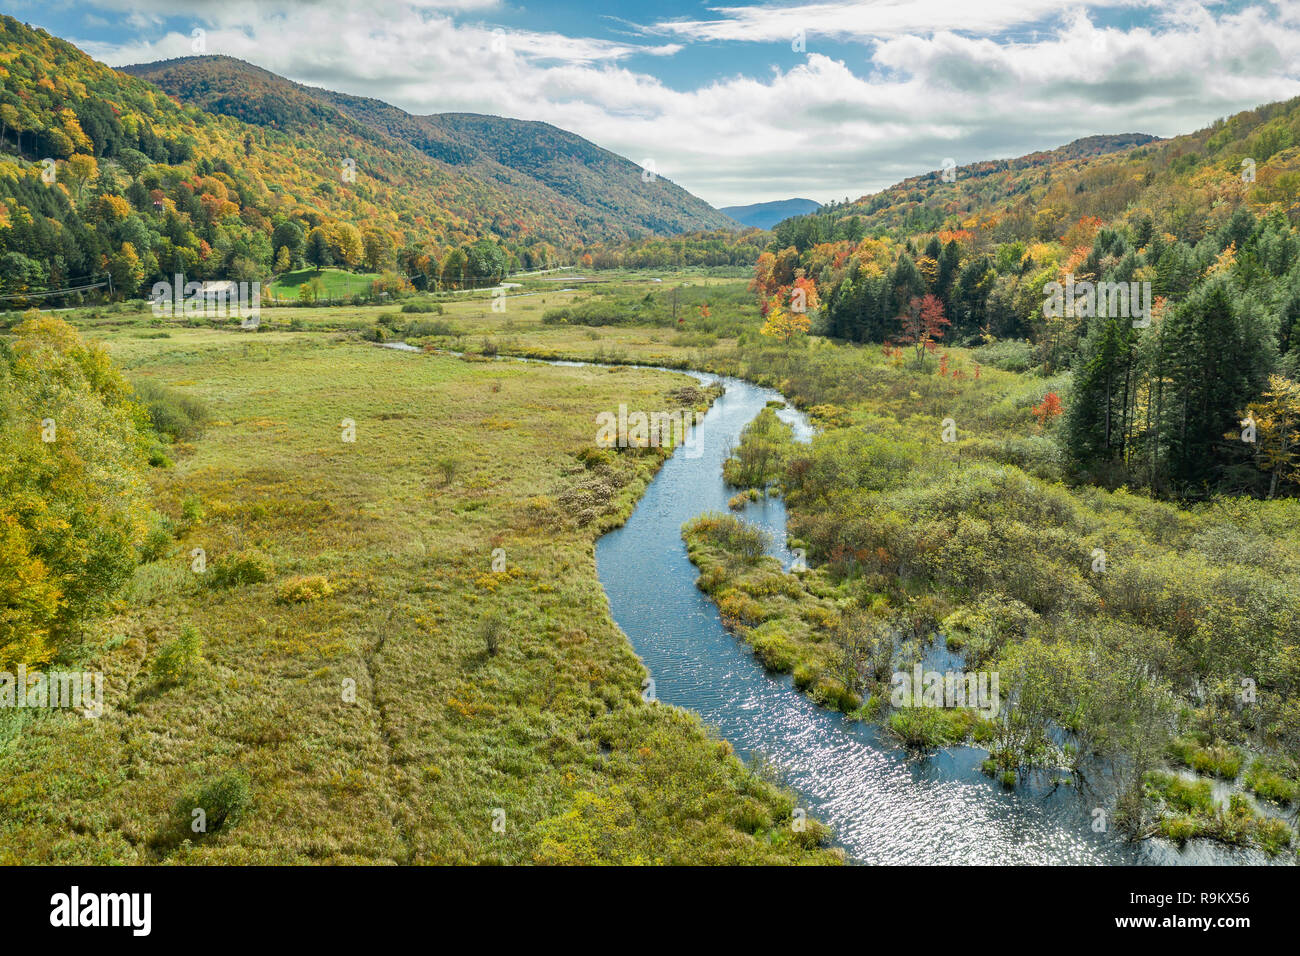 Ottaqueche River, Green Mountain National Forest, Woodstock, Vermont - Stock Image